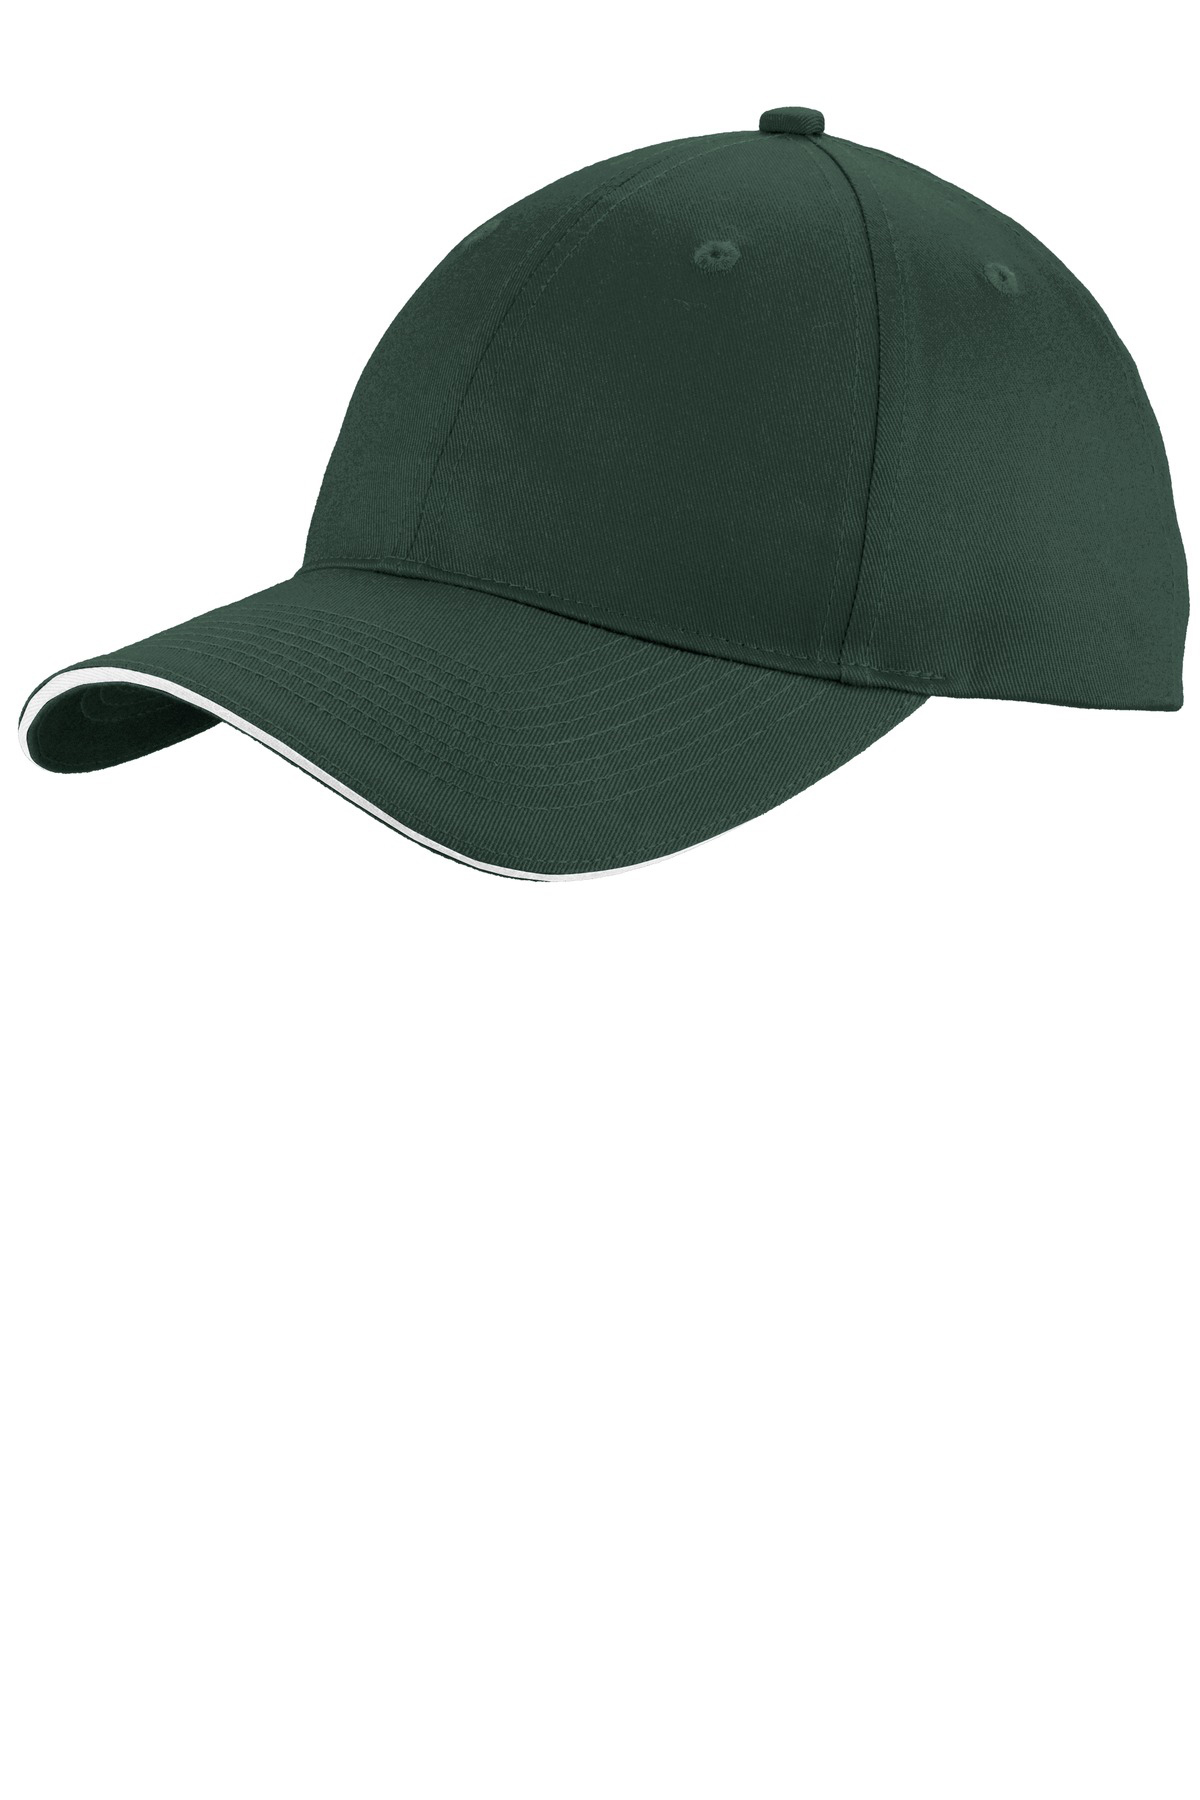 7b0ebd37 Port & Company® Unstructured Sandwich Bill Cap | Fashion | Caps ...